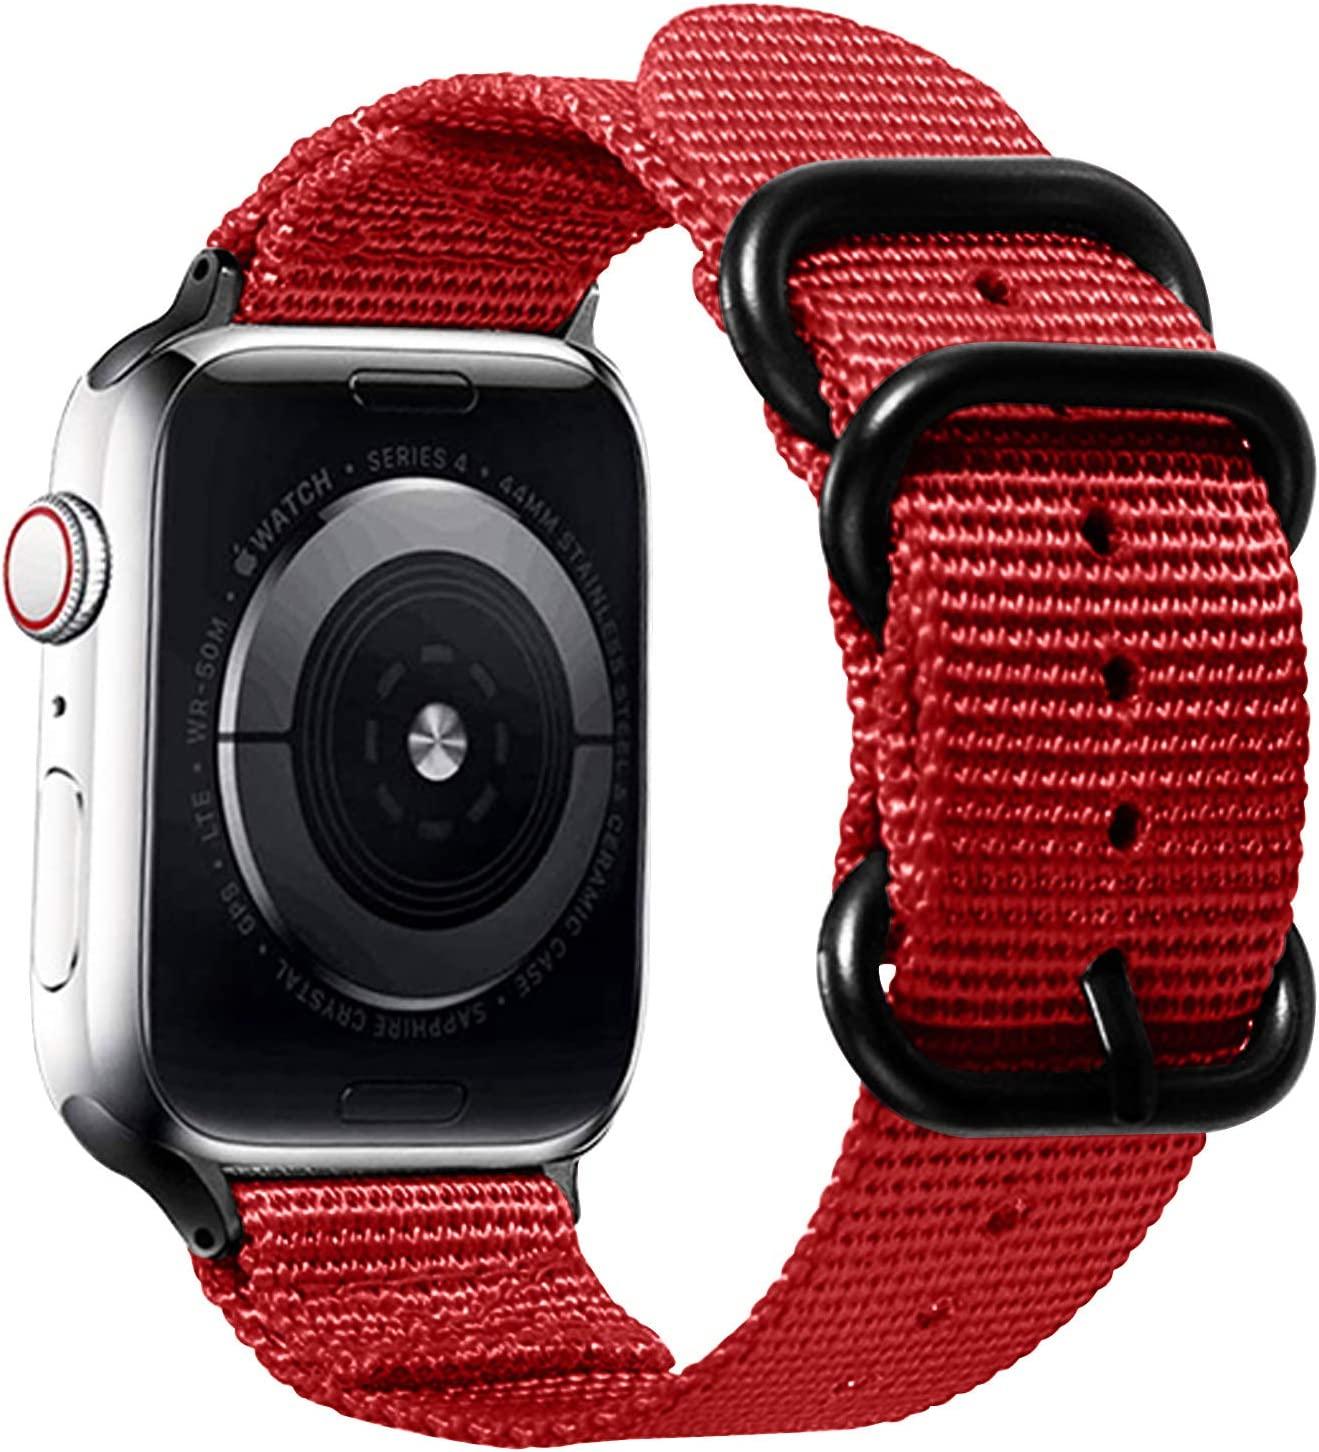 Watpro Compatible with Apple Watch Band 38mm 40mm 42mm 44mm Women Men Nylon Rugged Replacement iWatch Band Military-Style Buckle Grey Adapters for Sport Series 5 4 3 2 1 (1-Red, 38MM/40MM)